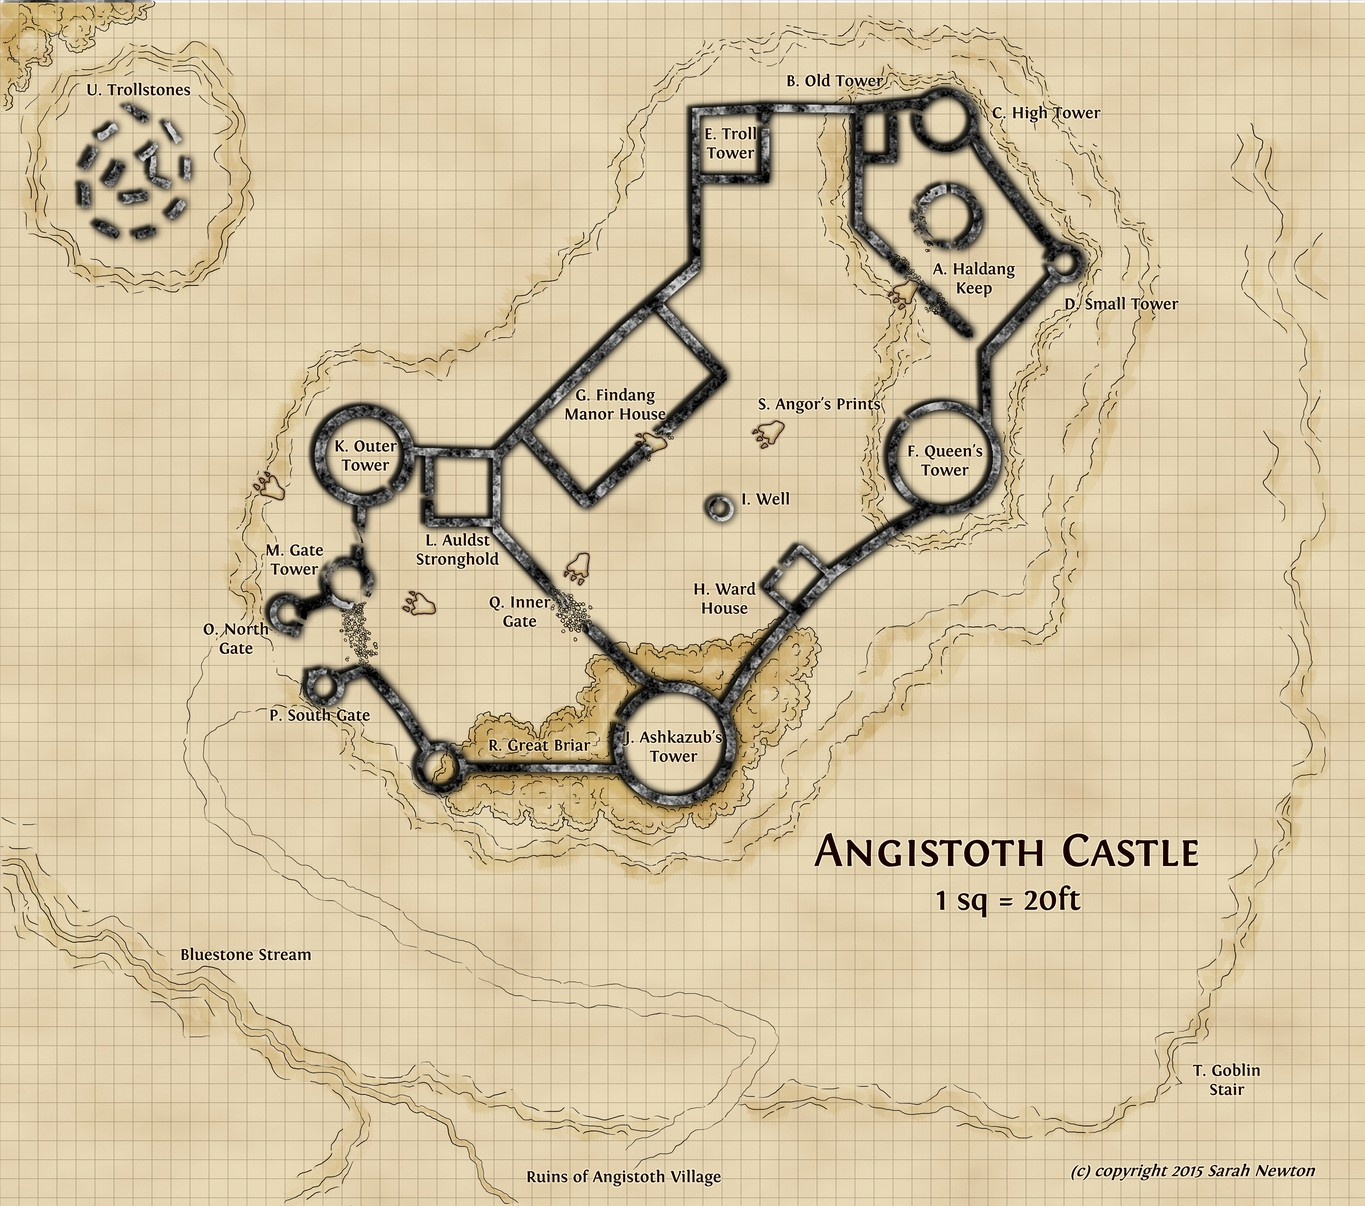 World building a first look at angistoth castle sarah newton writer blackfear dungeon level zerov3small gumiabroncs Gallery